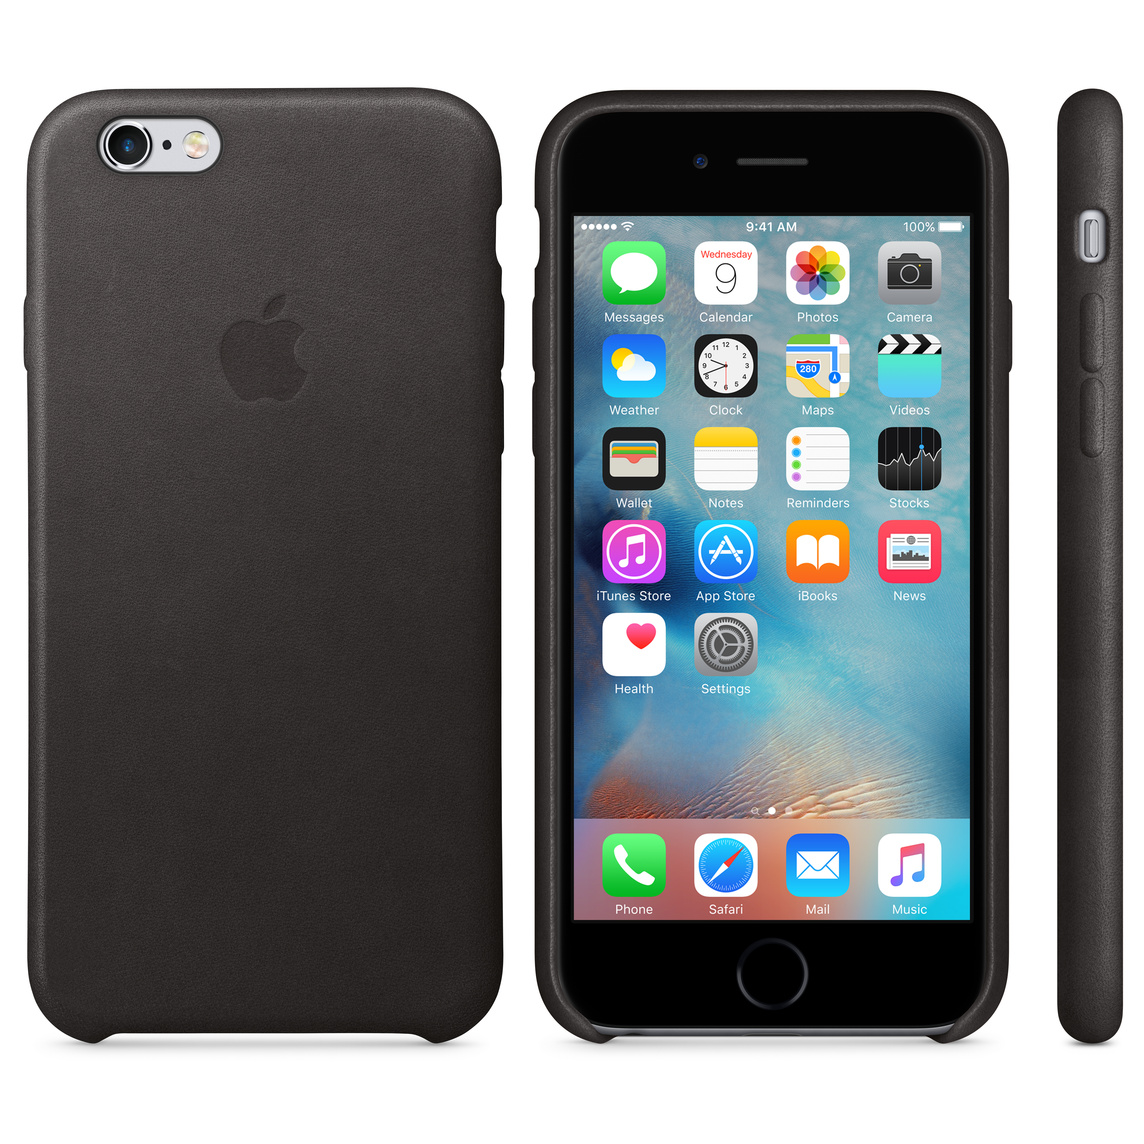 new products 21fac b79de iPhone 6 / 6s Leather Case - Black